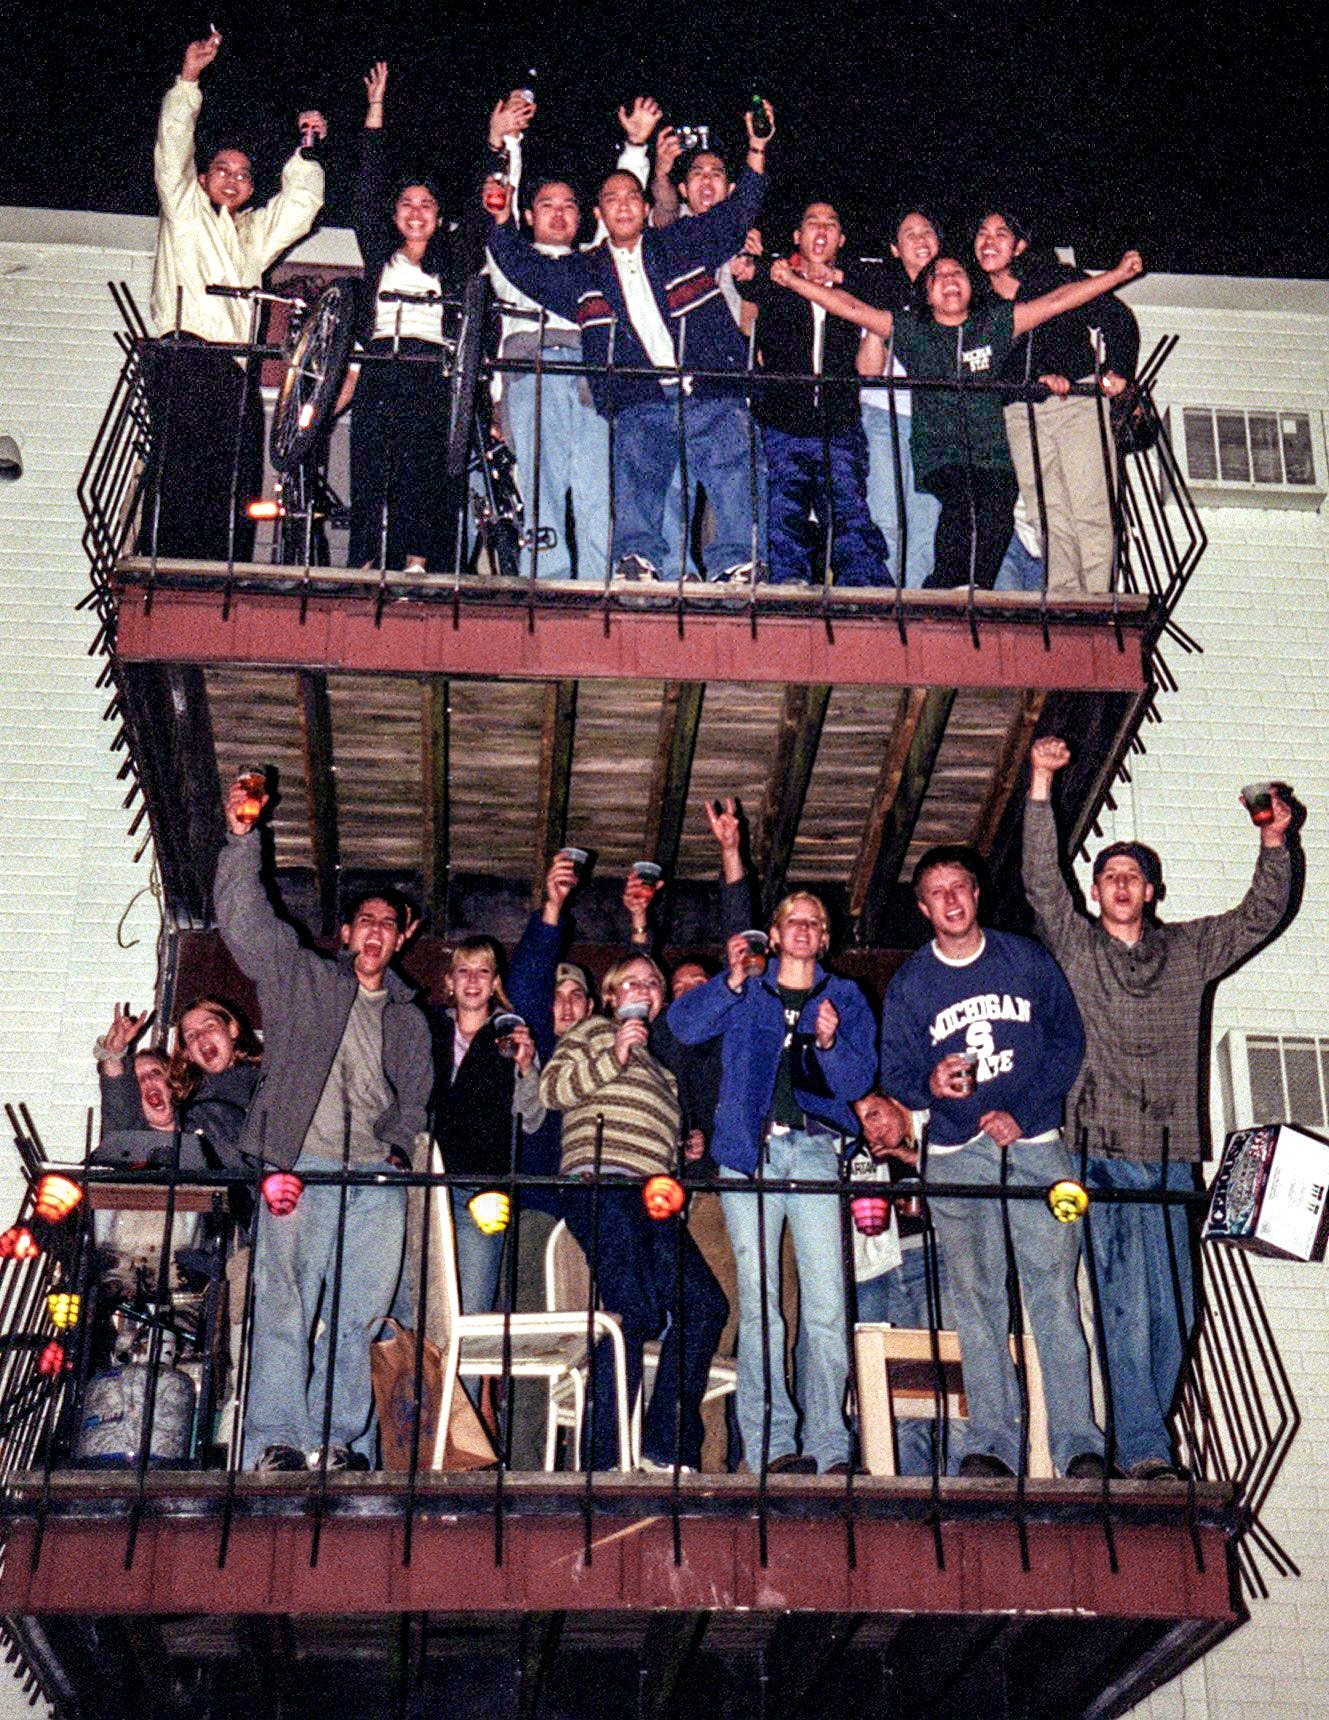 Cedar Village residents applaud during half-time of a Final Four diversion between Michigan State University and Duke in a NCAA Men's Basketball Tournament  on Saturday, Mar 27, 1999, in East Lansing. MSU mislaid a game, triggering bonfires and riots in a city.